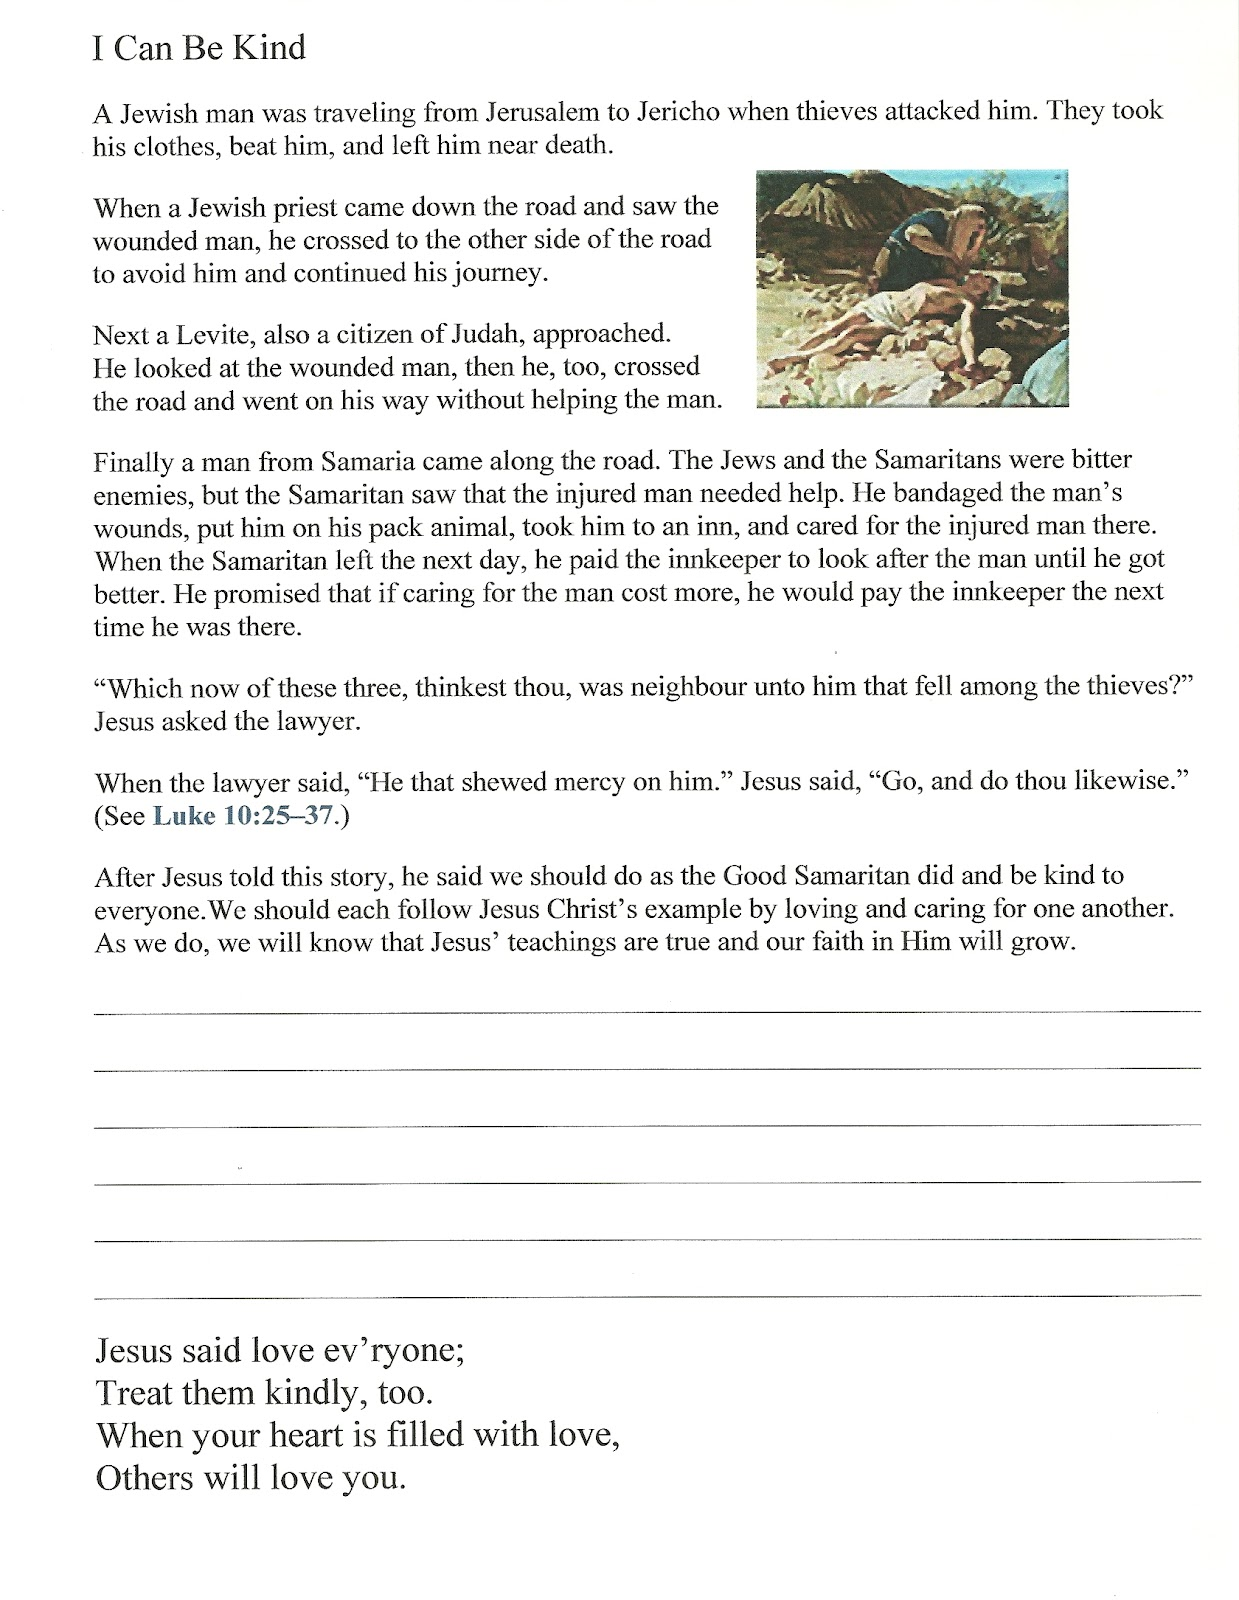 Primary 2 Lesson 28 Manual I Can Be Kind Journal Page